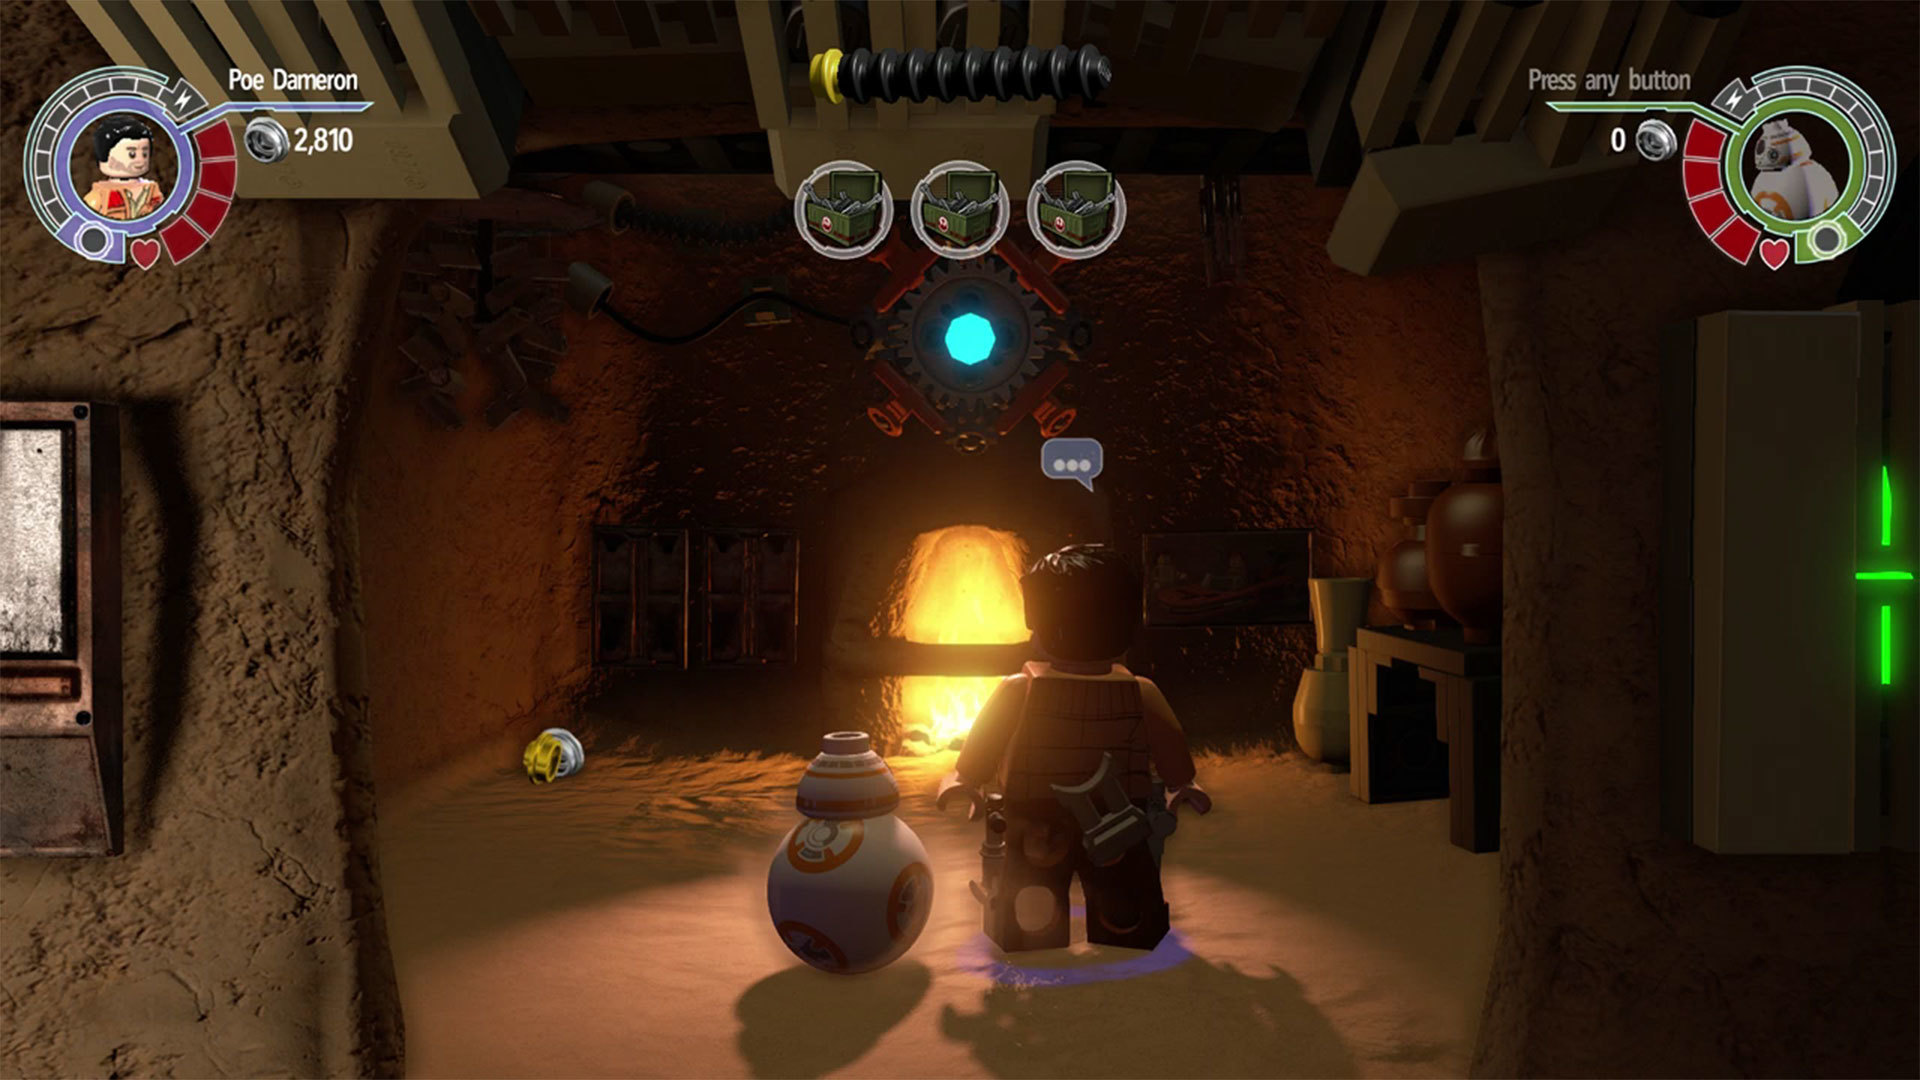 Lego Star Wars The Force Awakens Rom